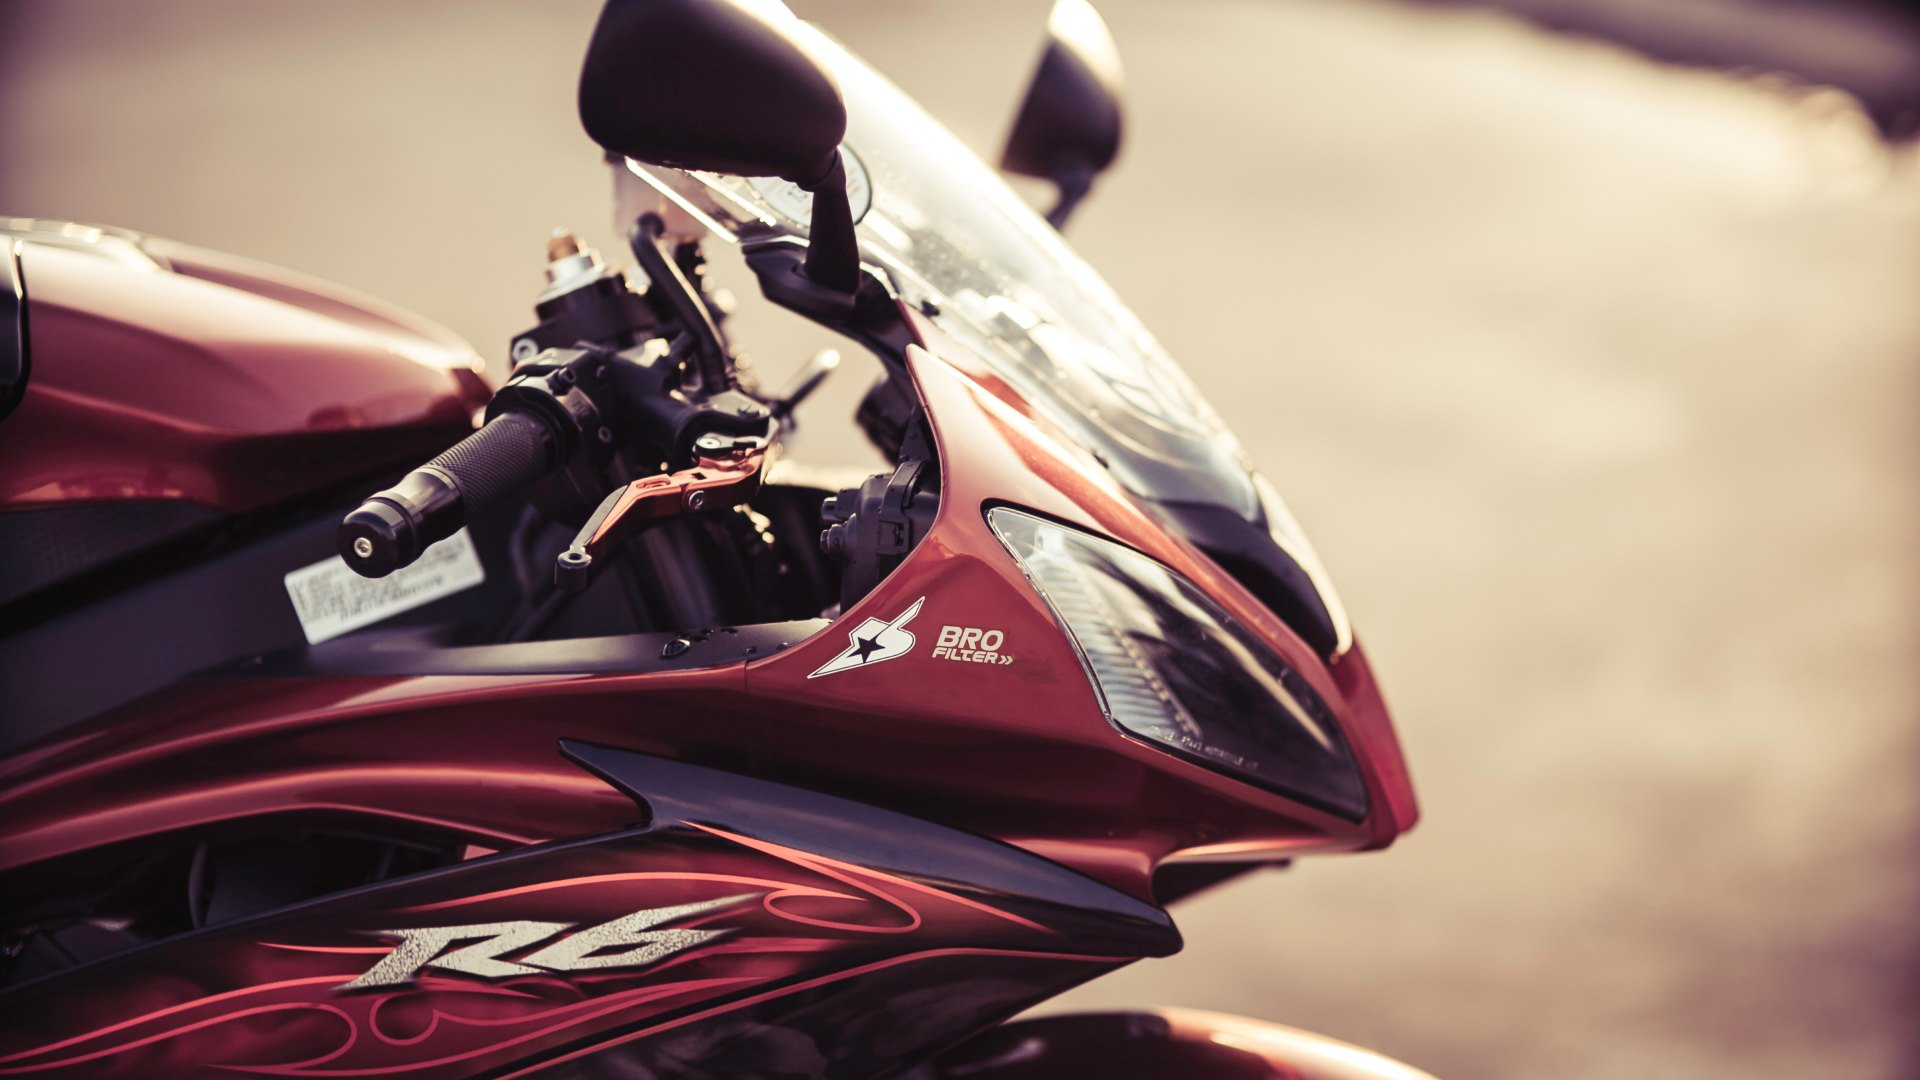 Wallpaper 2: Yamaha R6 Motorcycle